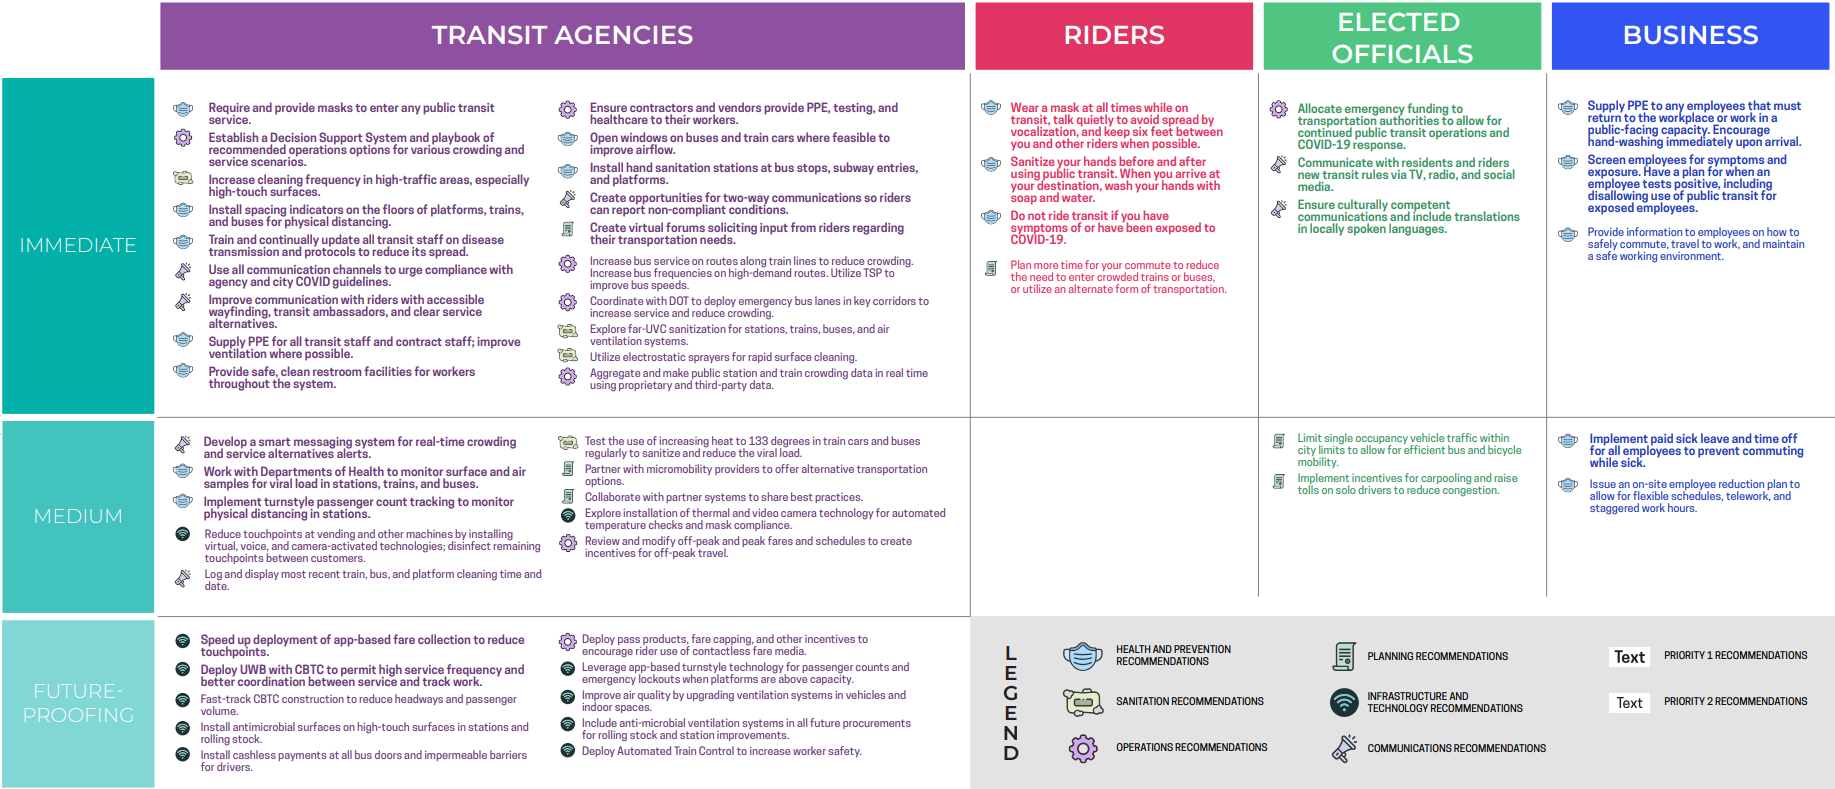 A table of the Immediate, Medium, and Future Proofing measures that Transit Agencies, Riders, Elected Officials, and Businesses can take to stay safe while increasing ridership.